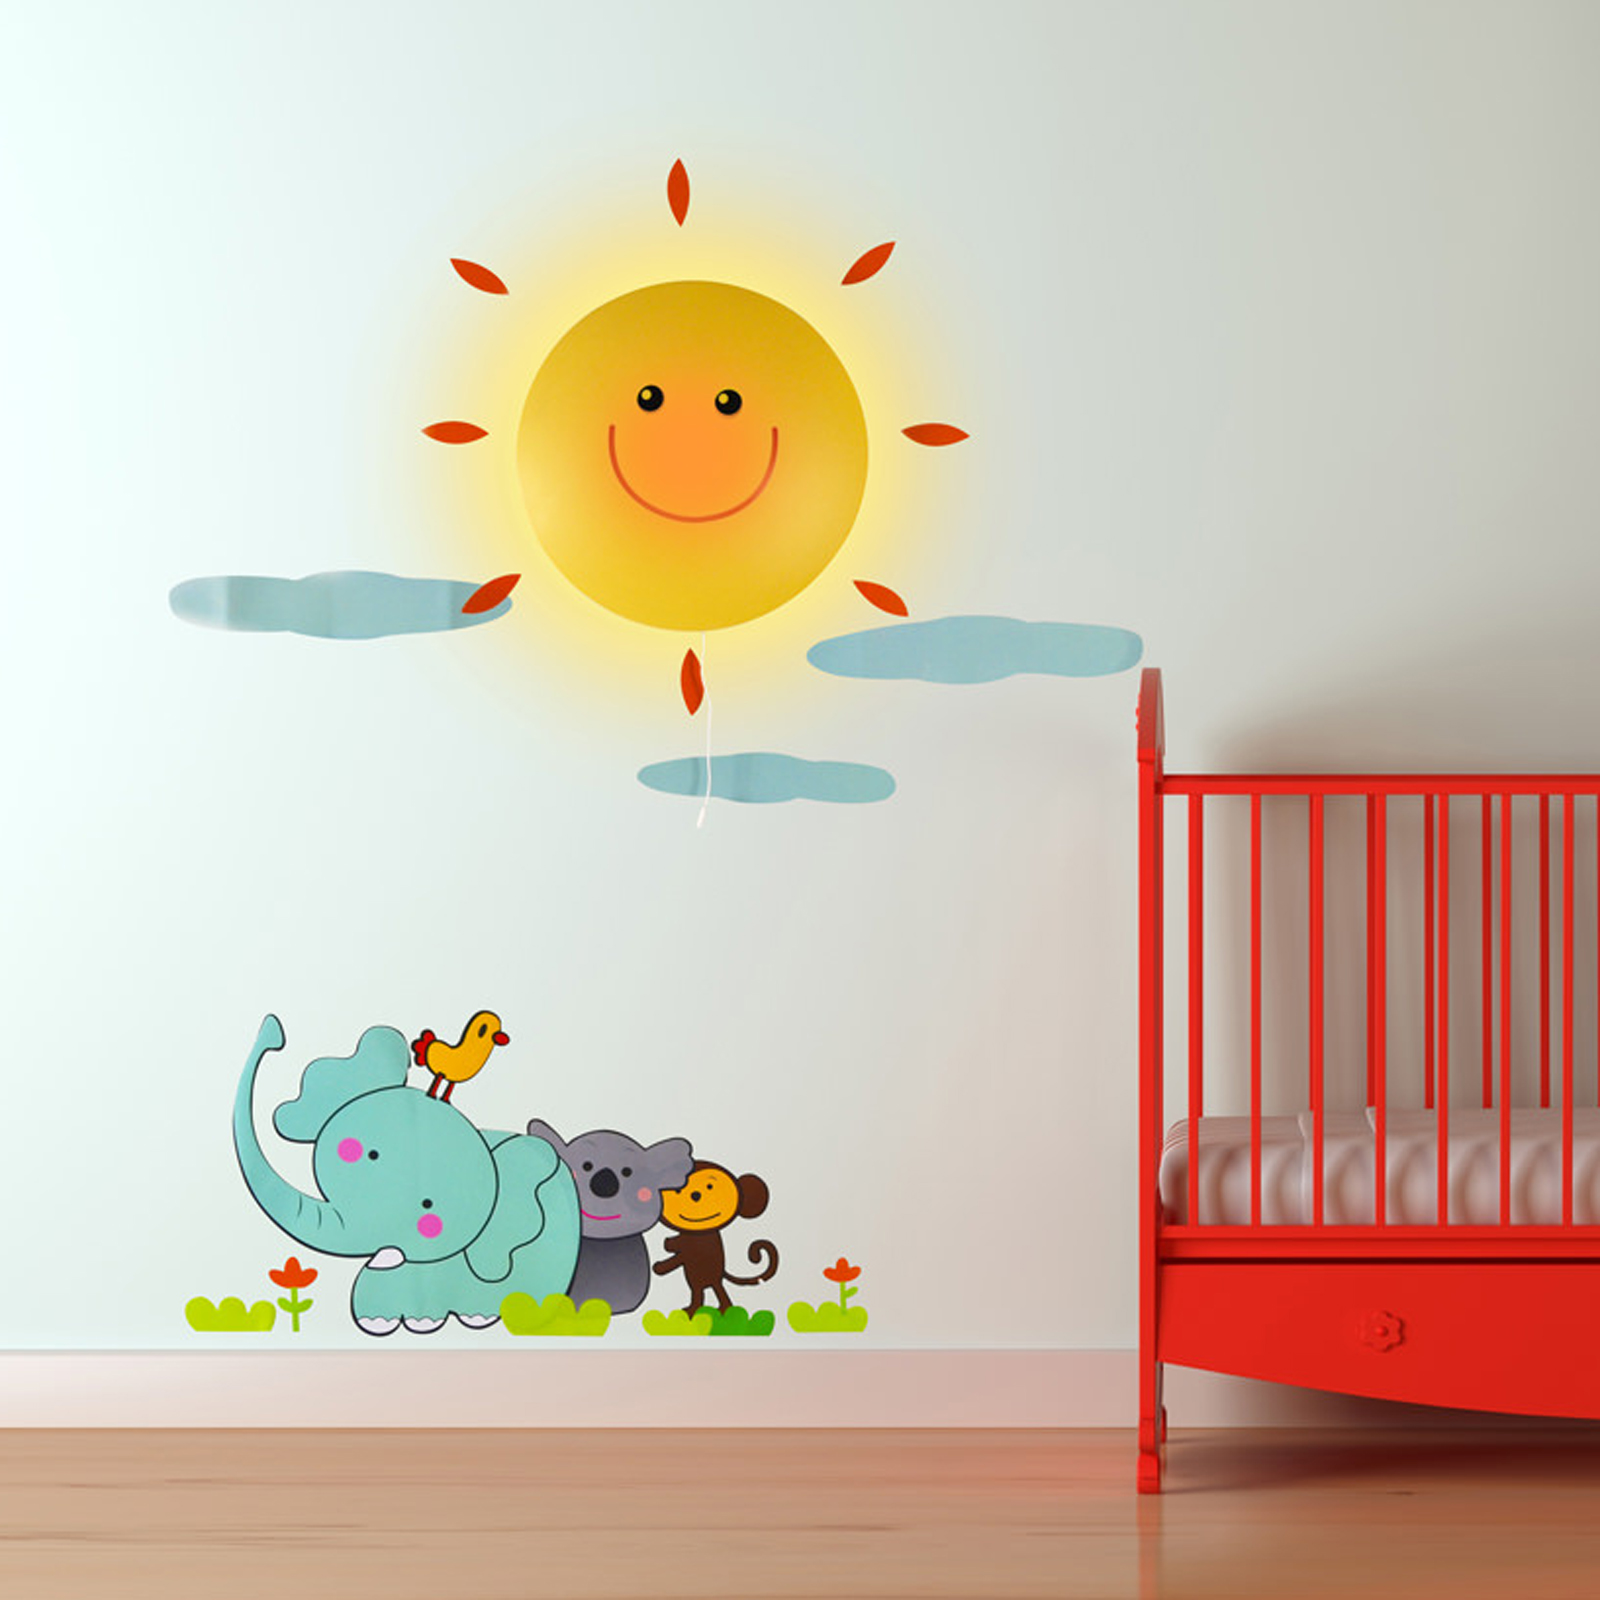 buy cheap sun wall sticker compare products prices for